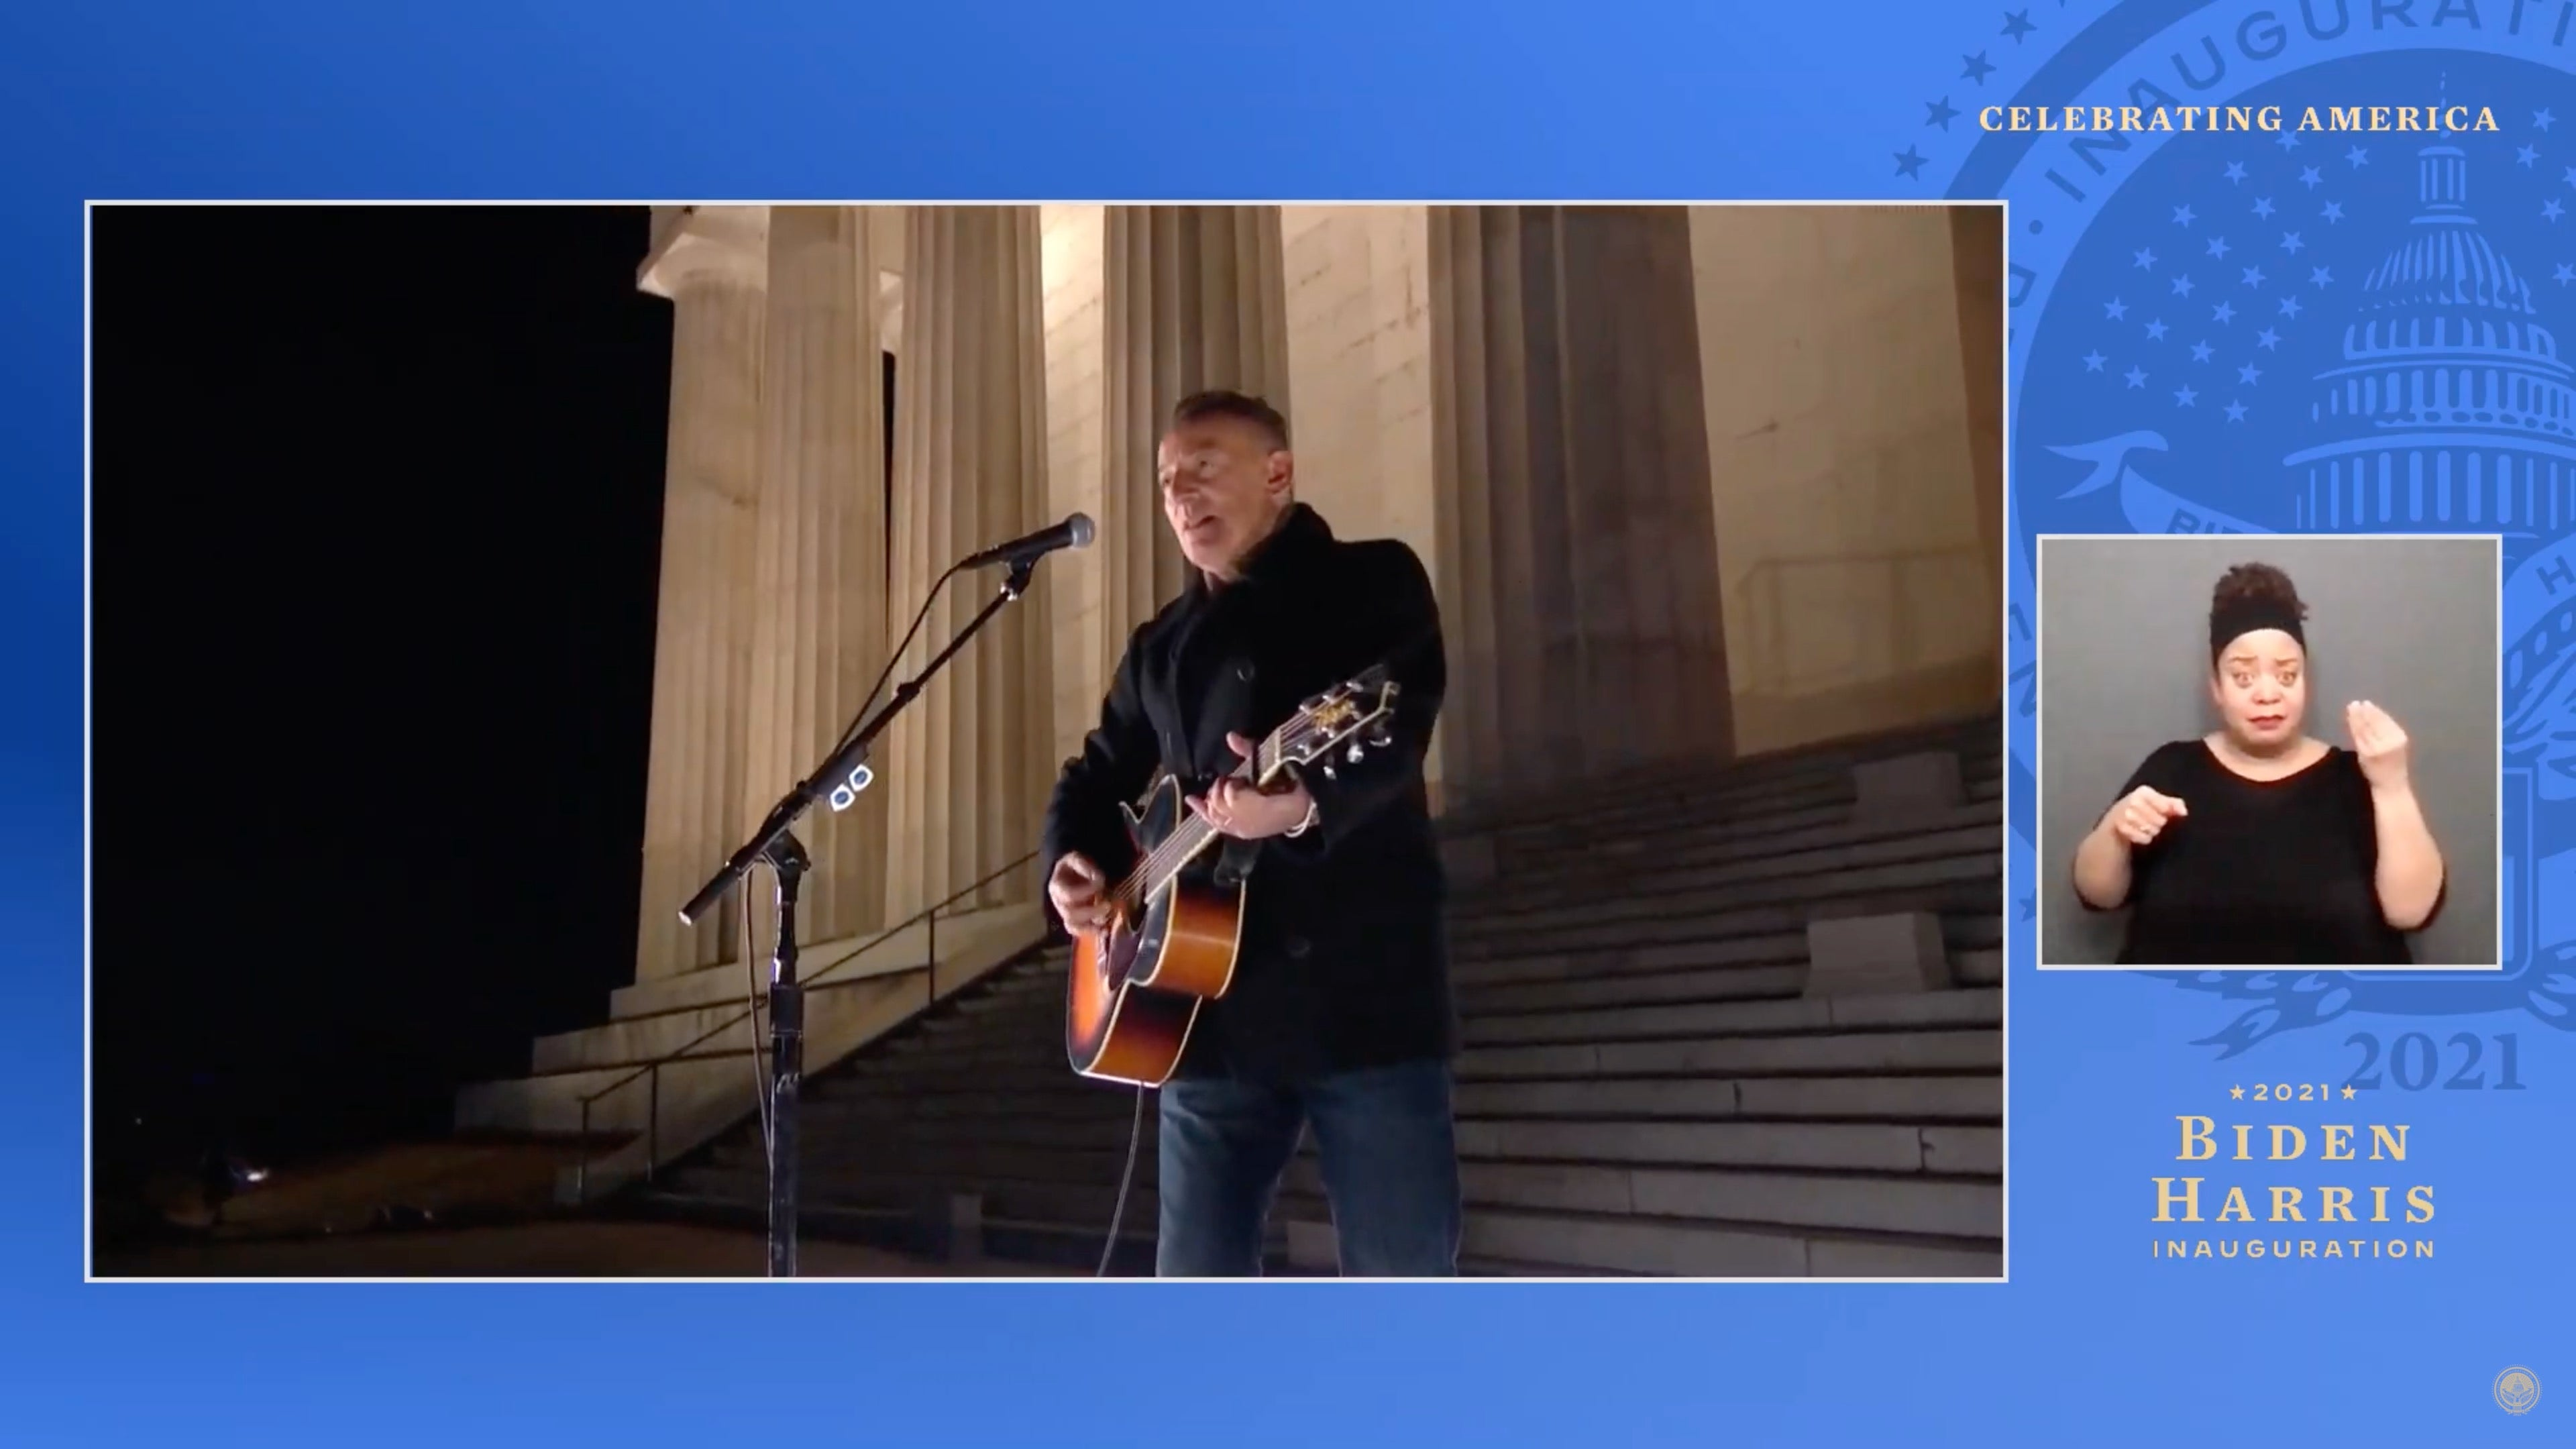 Biden inauguration concert - live: John Legend, Yo-Yo Ma and more perform at celebration hosted by Tom Hanks - The Independent